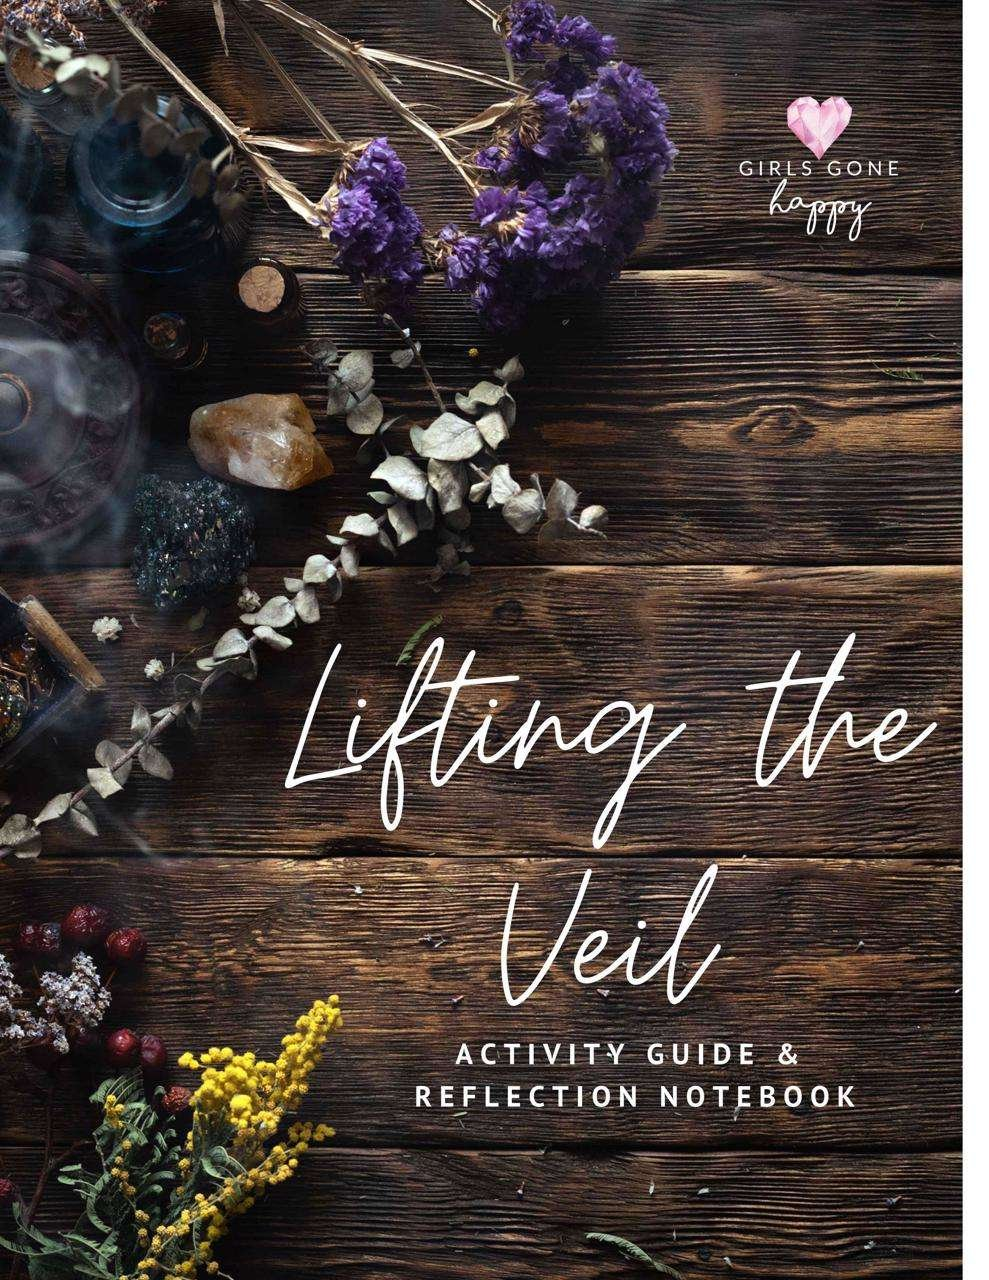 Lifting the Veil Activity Guide and Reflection Notebook